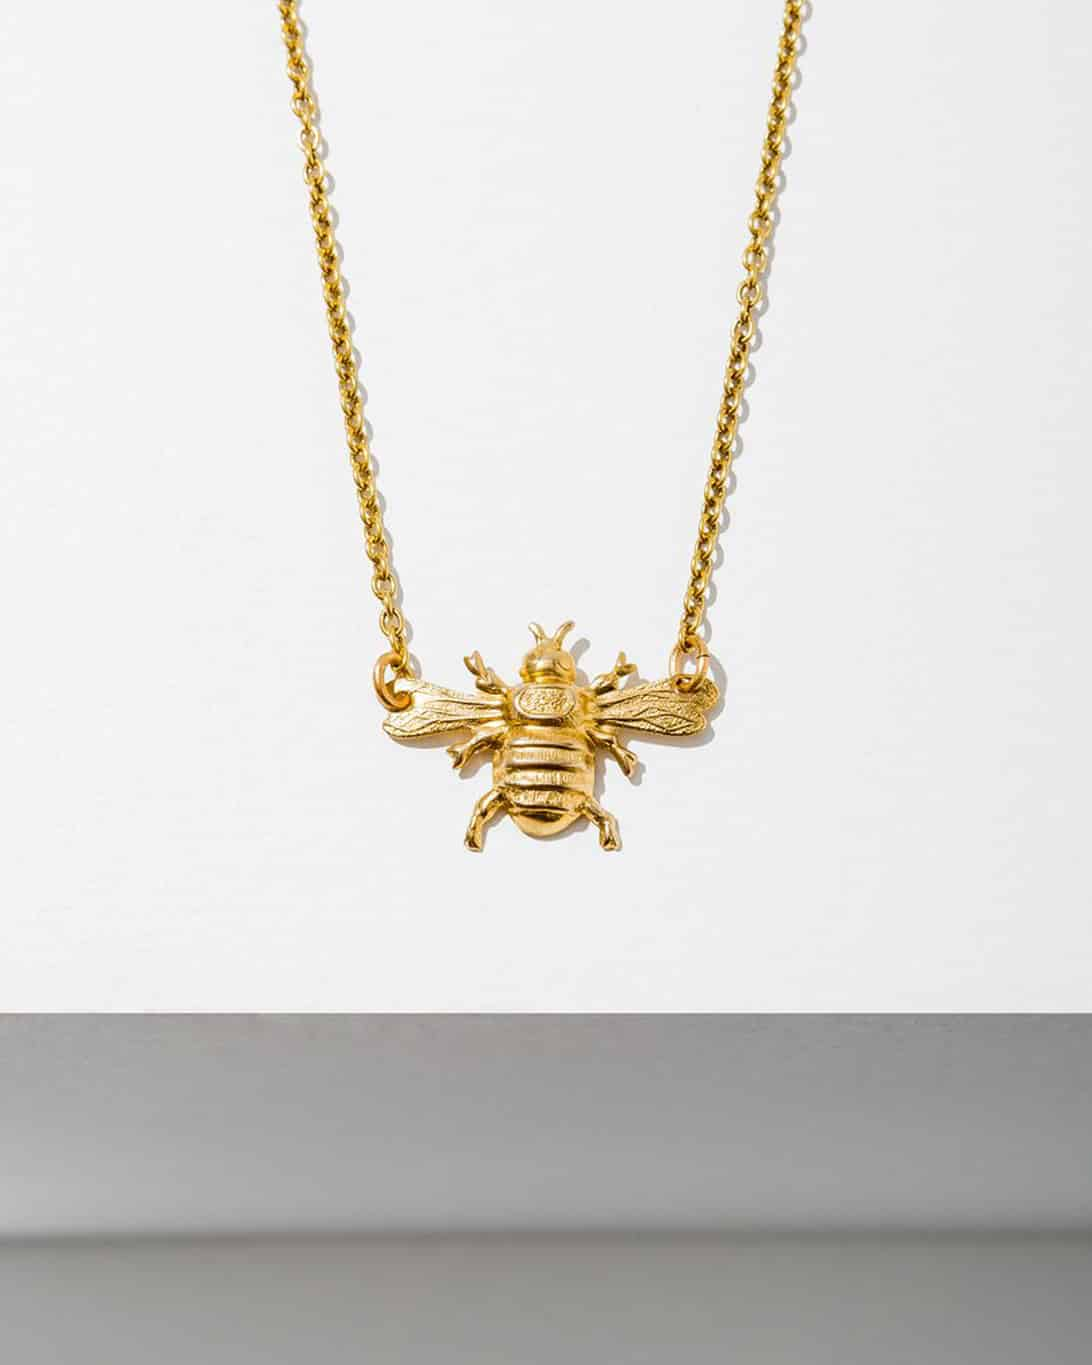 A brass necklace with a bee on the end